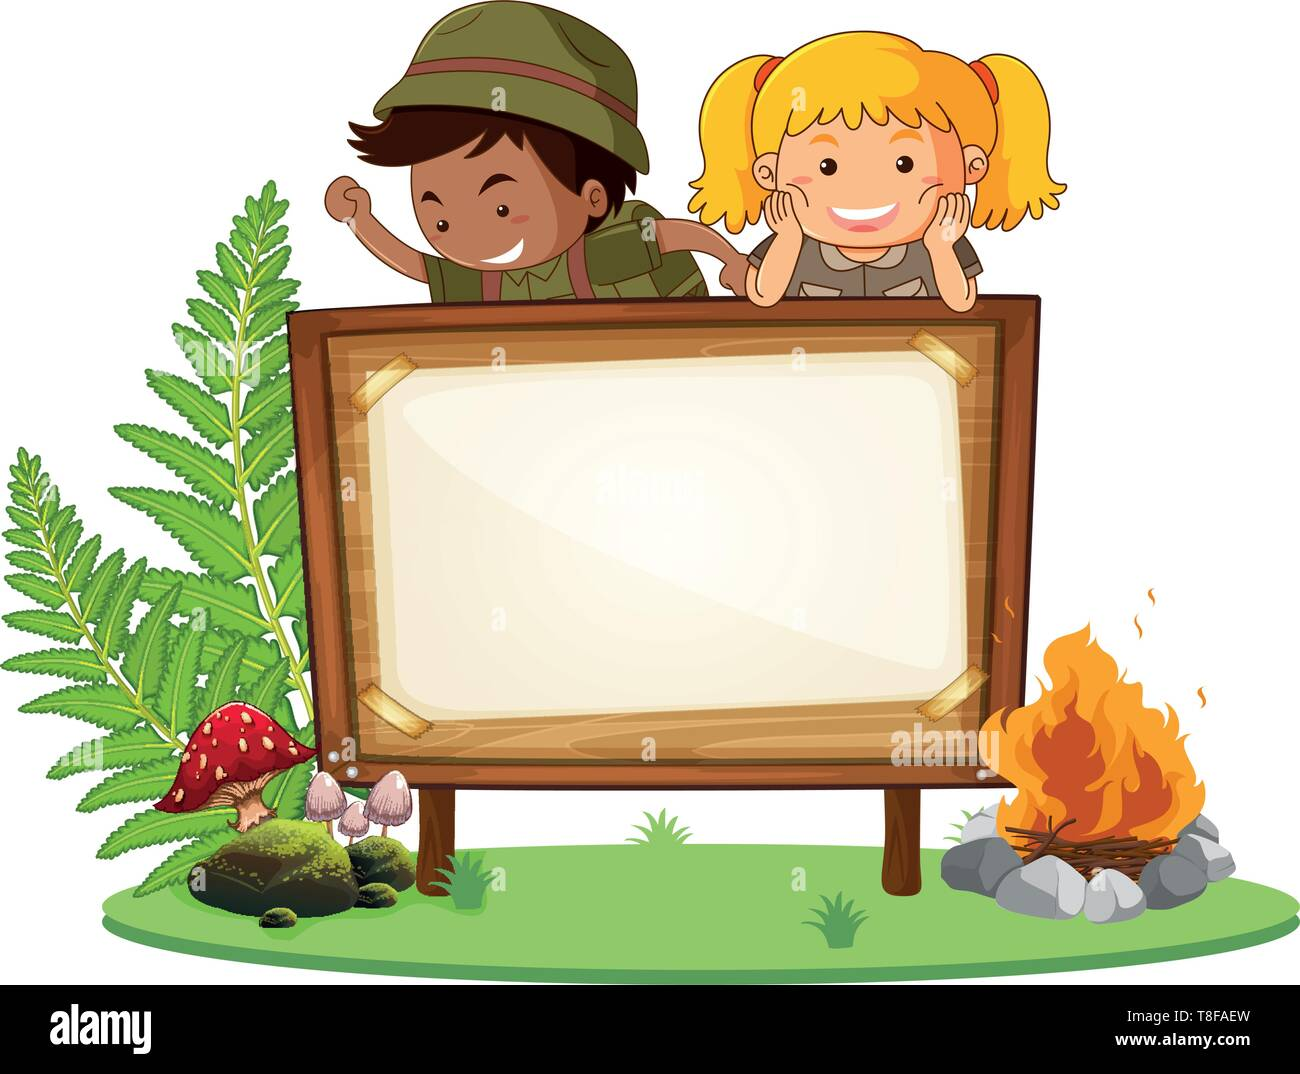 Boy and girl scout banner illustration - Stock Image